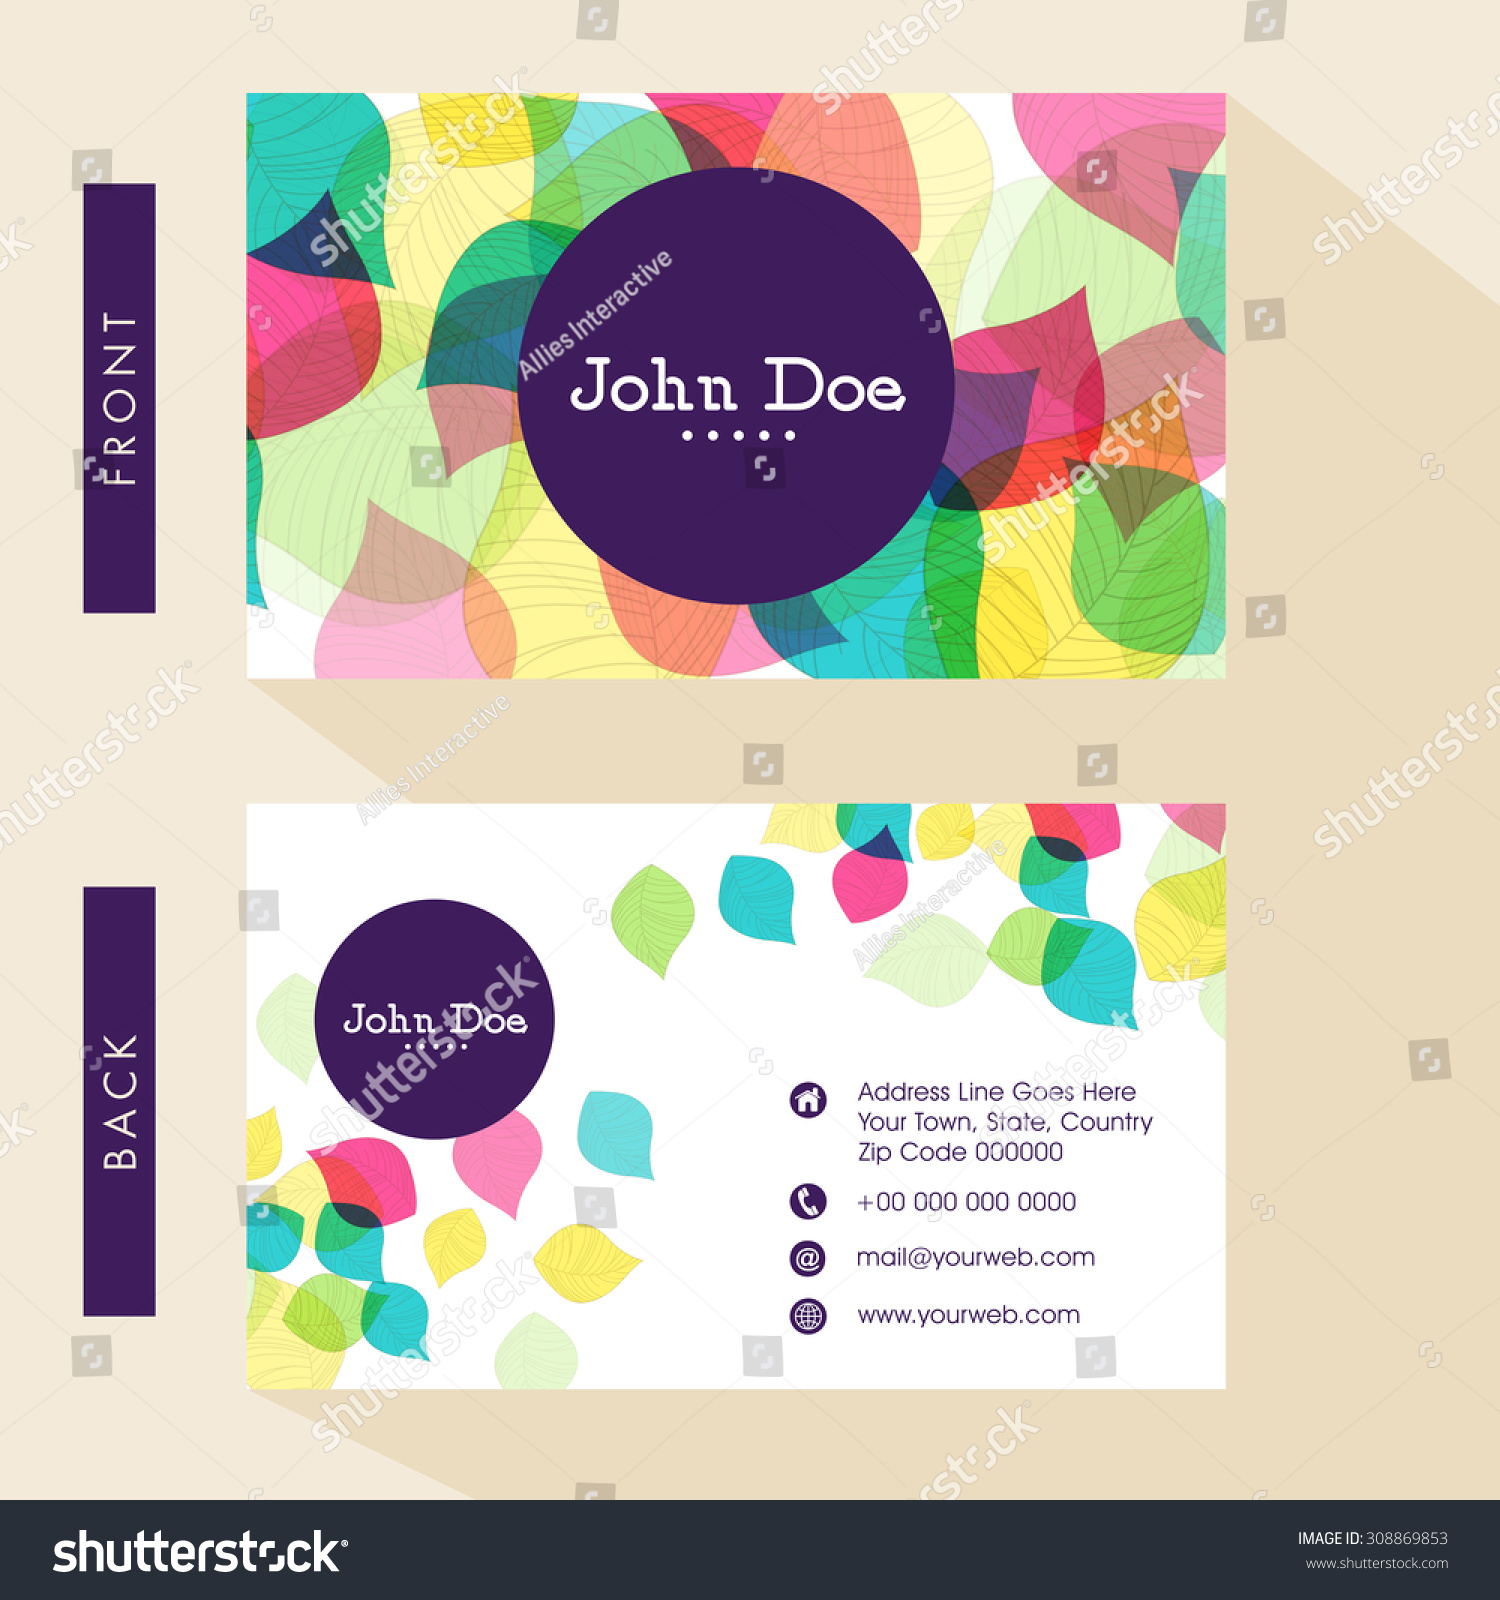 Business Card Visiting Card Design Front Stock Photo (Photo, Vector ...